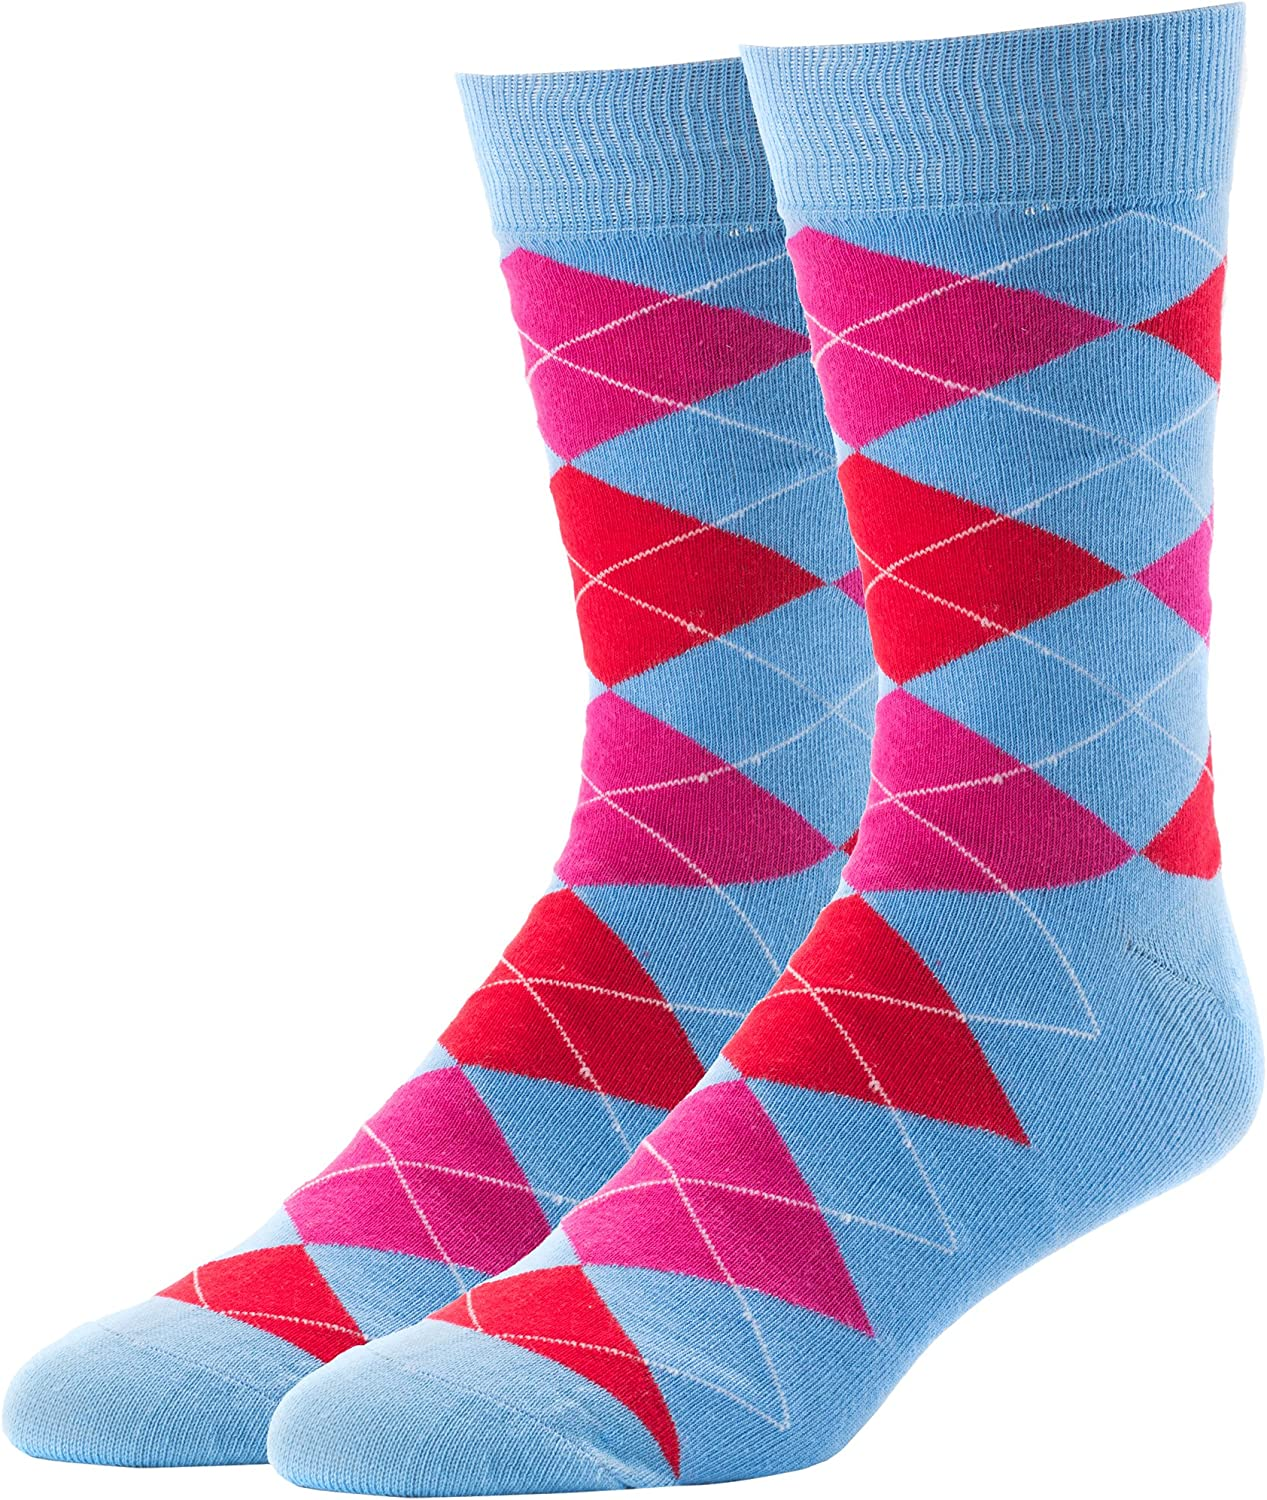 JYinstyle 7 Pack Mens Classic Colorful Cotton Crew Socks Stockings US Size 10-13 Set 2